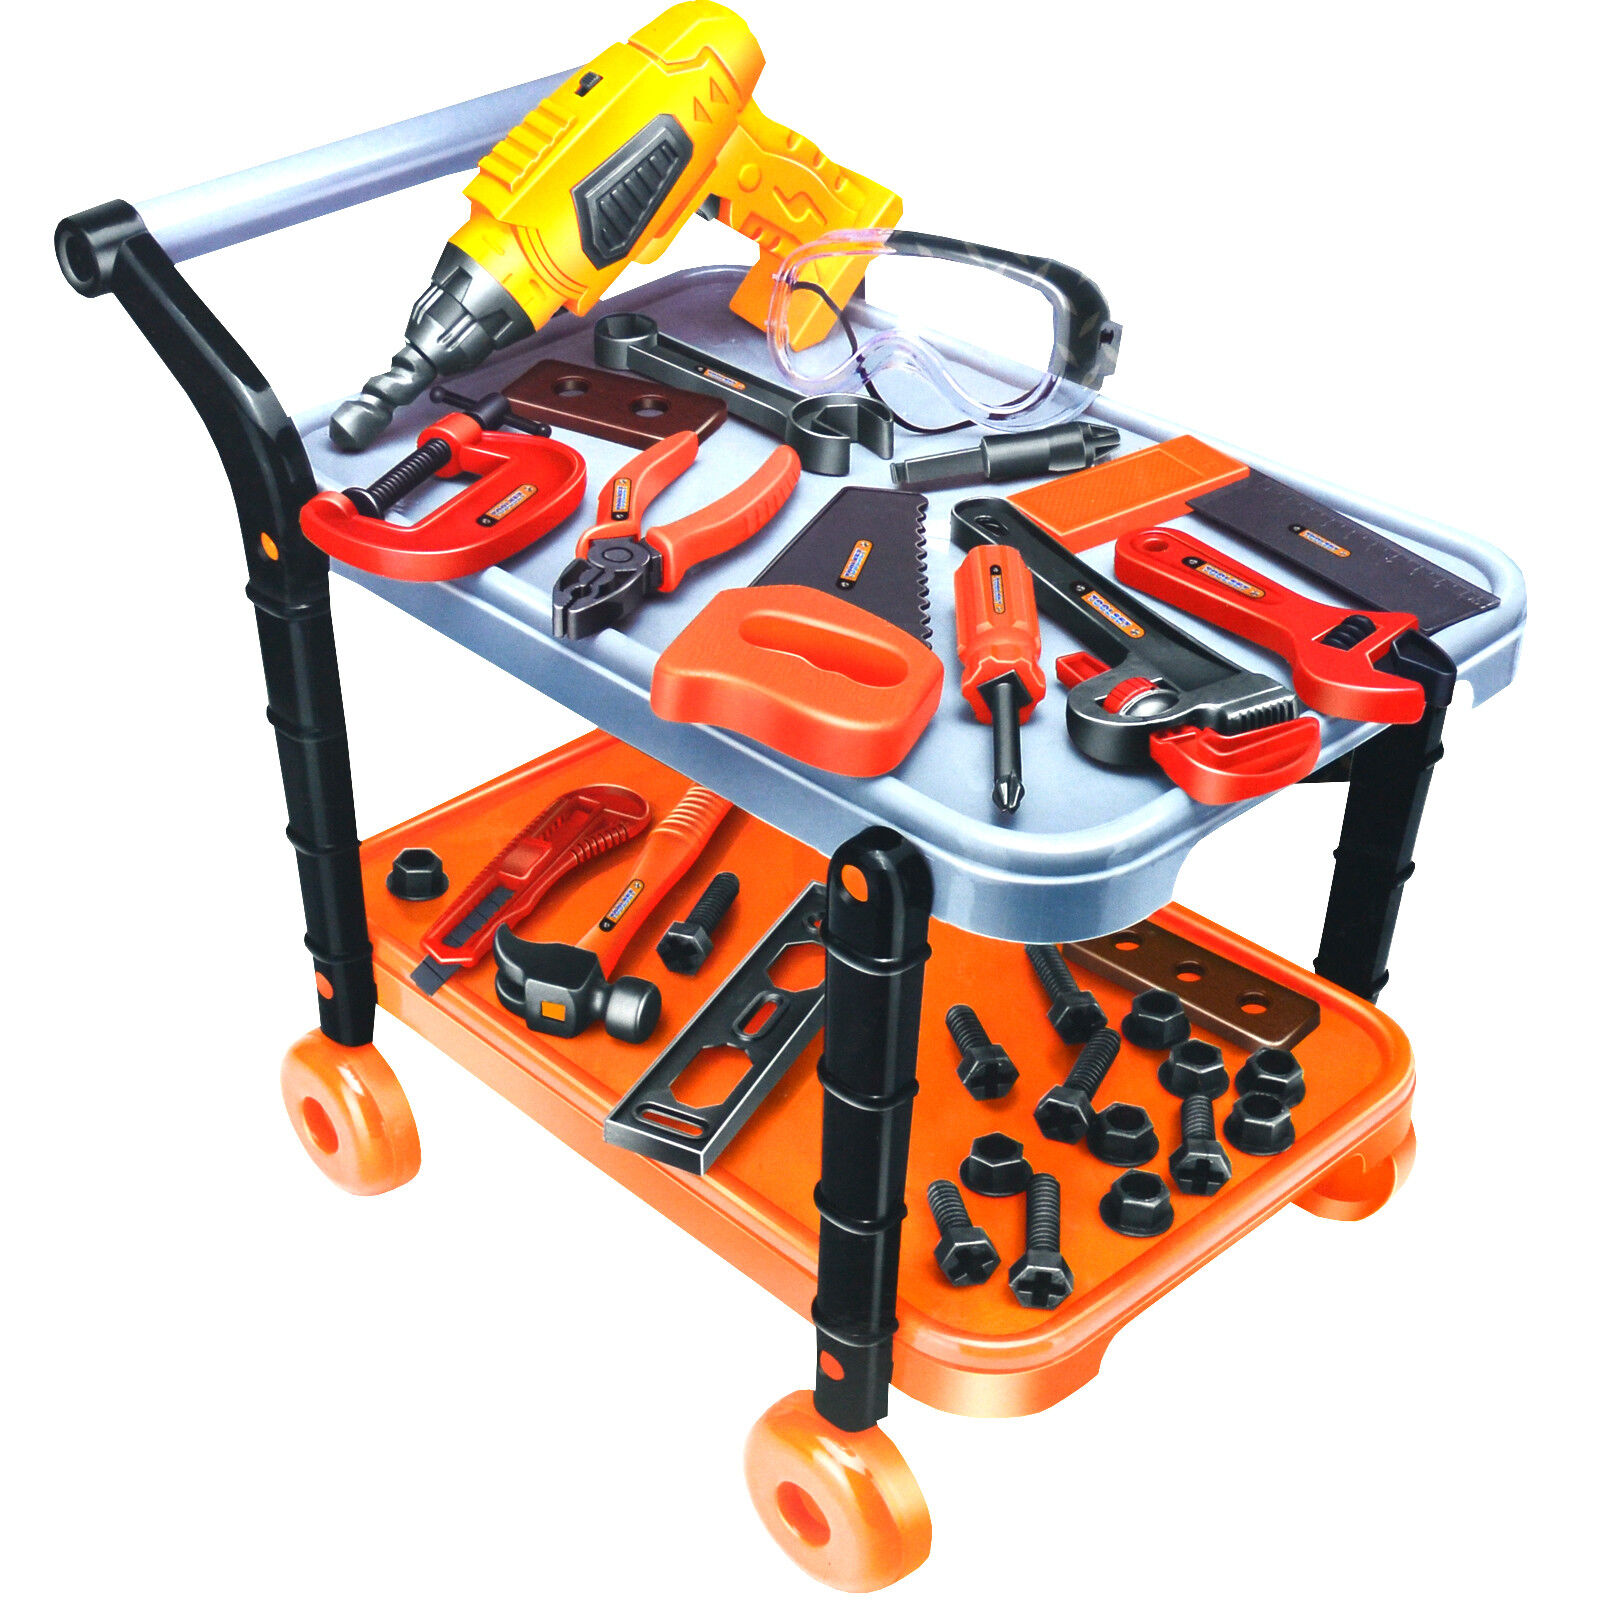 45PC KIDS CONSTRUCTION DIY TOOL SET TROLLEY BENCH PLAY ...